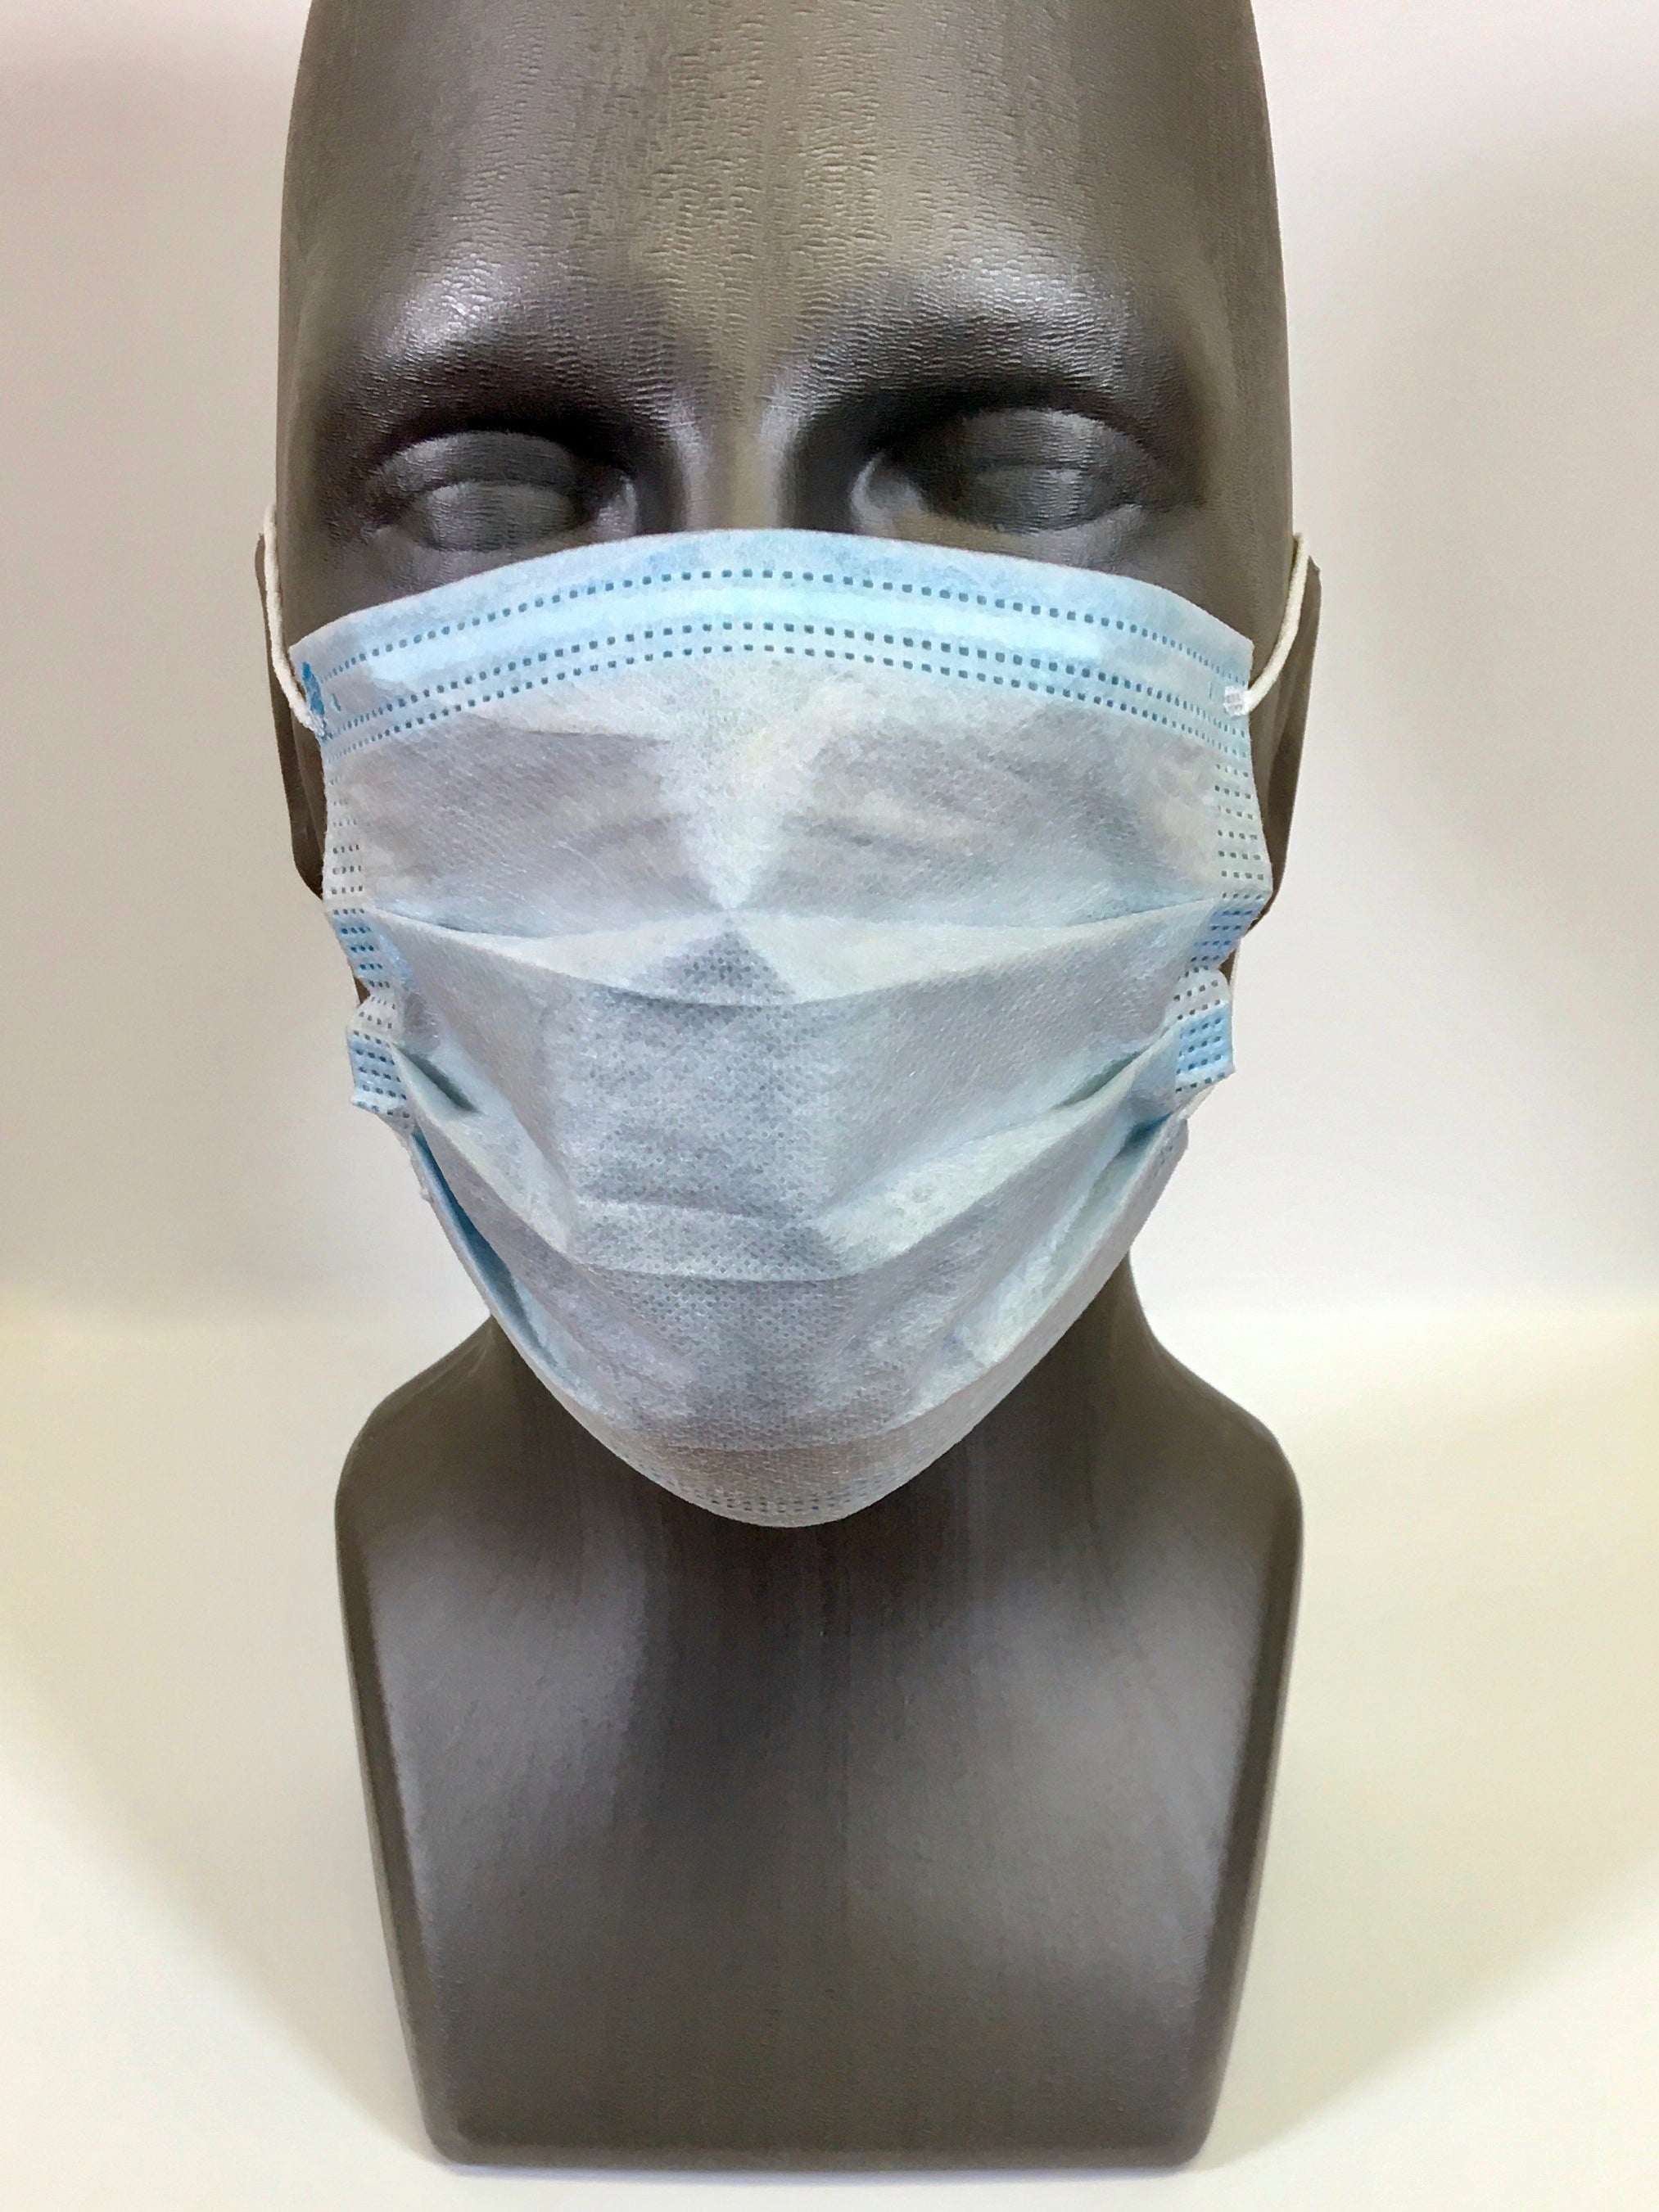 Level 1 Protective Face Mask shown on mannequin head.